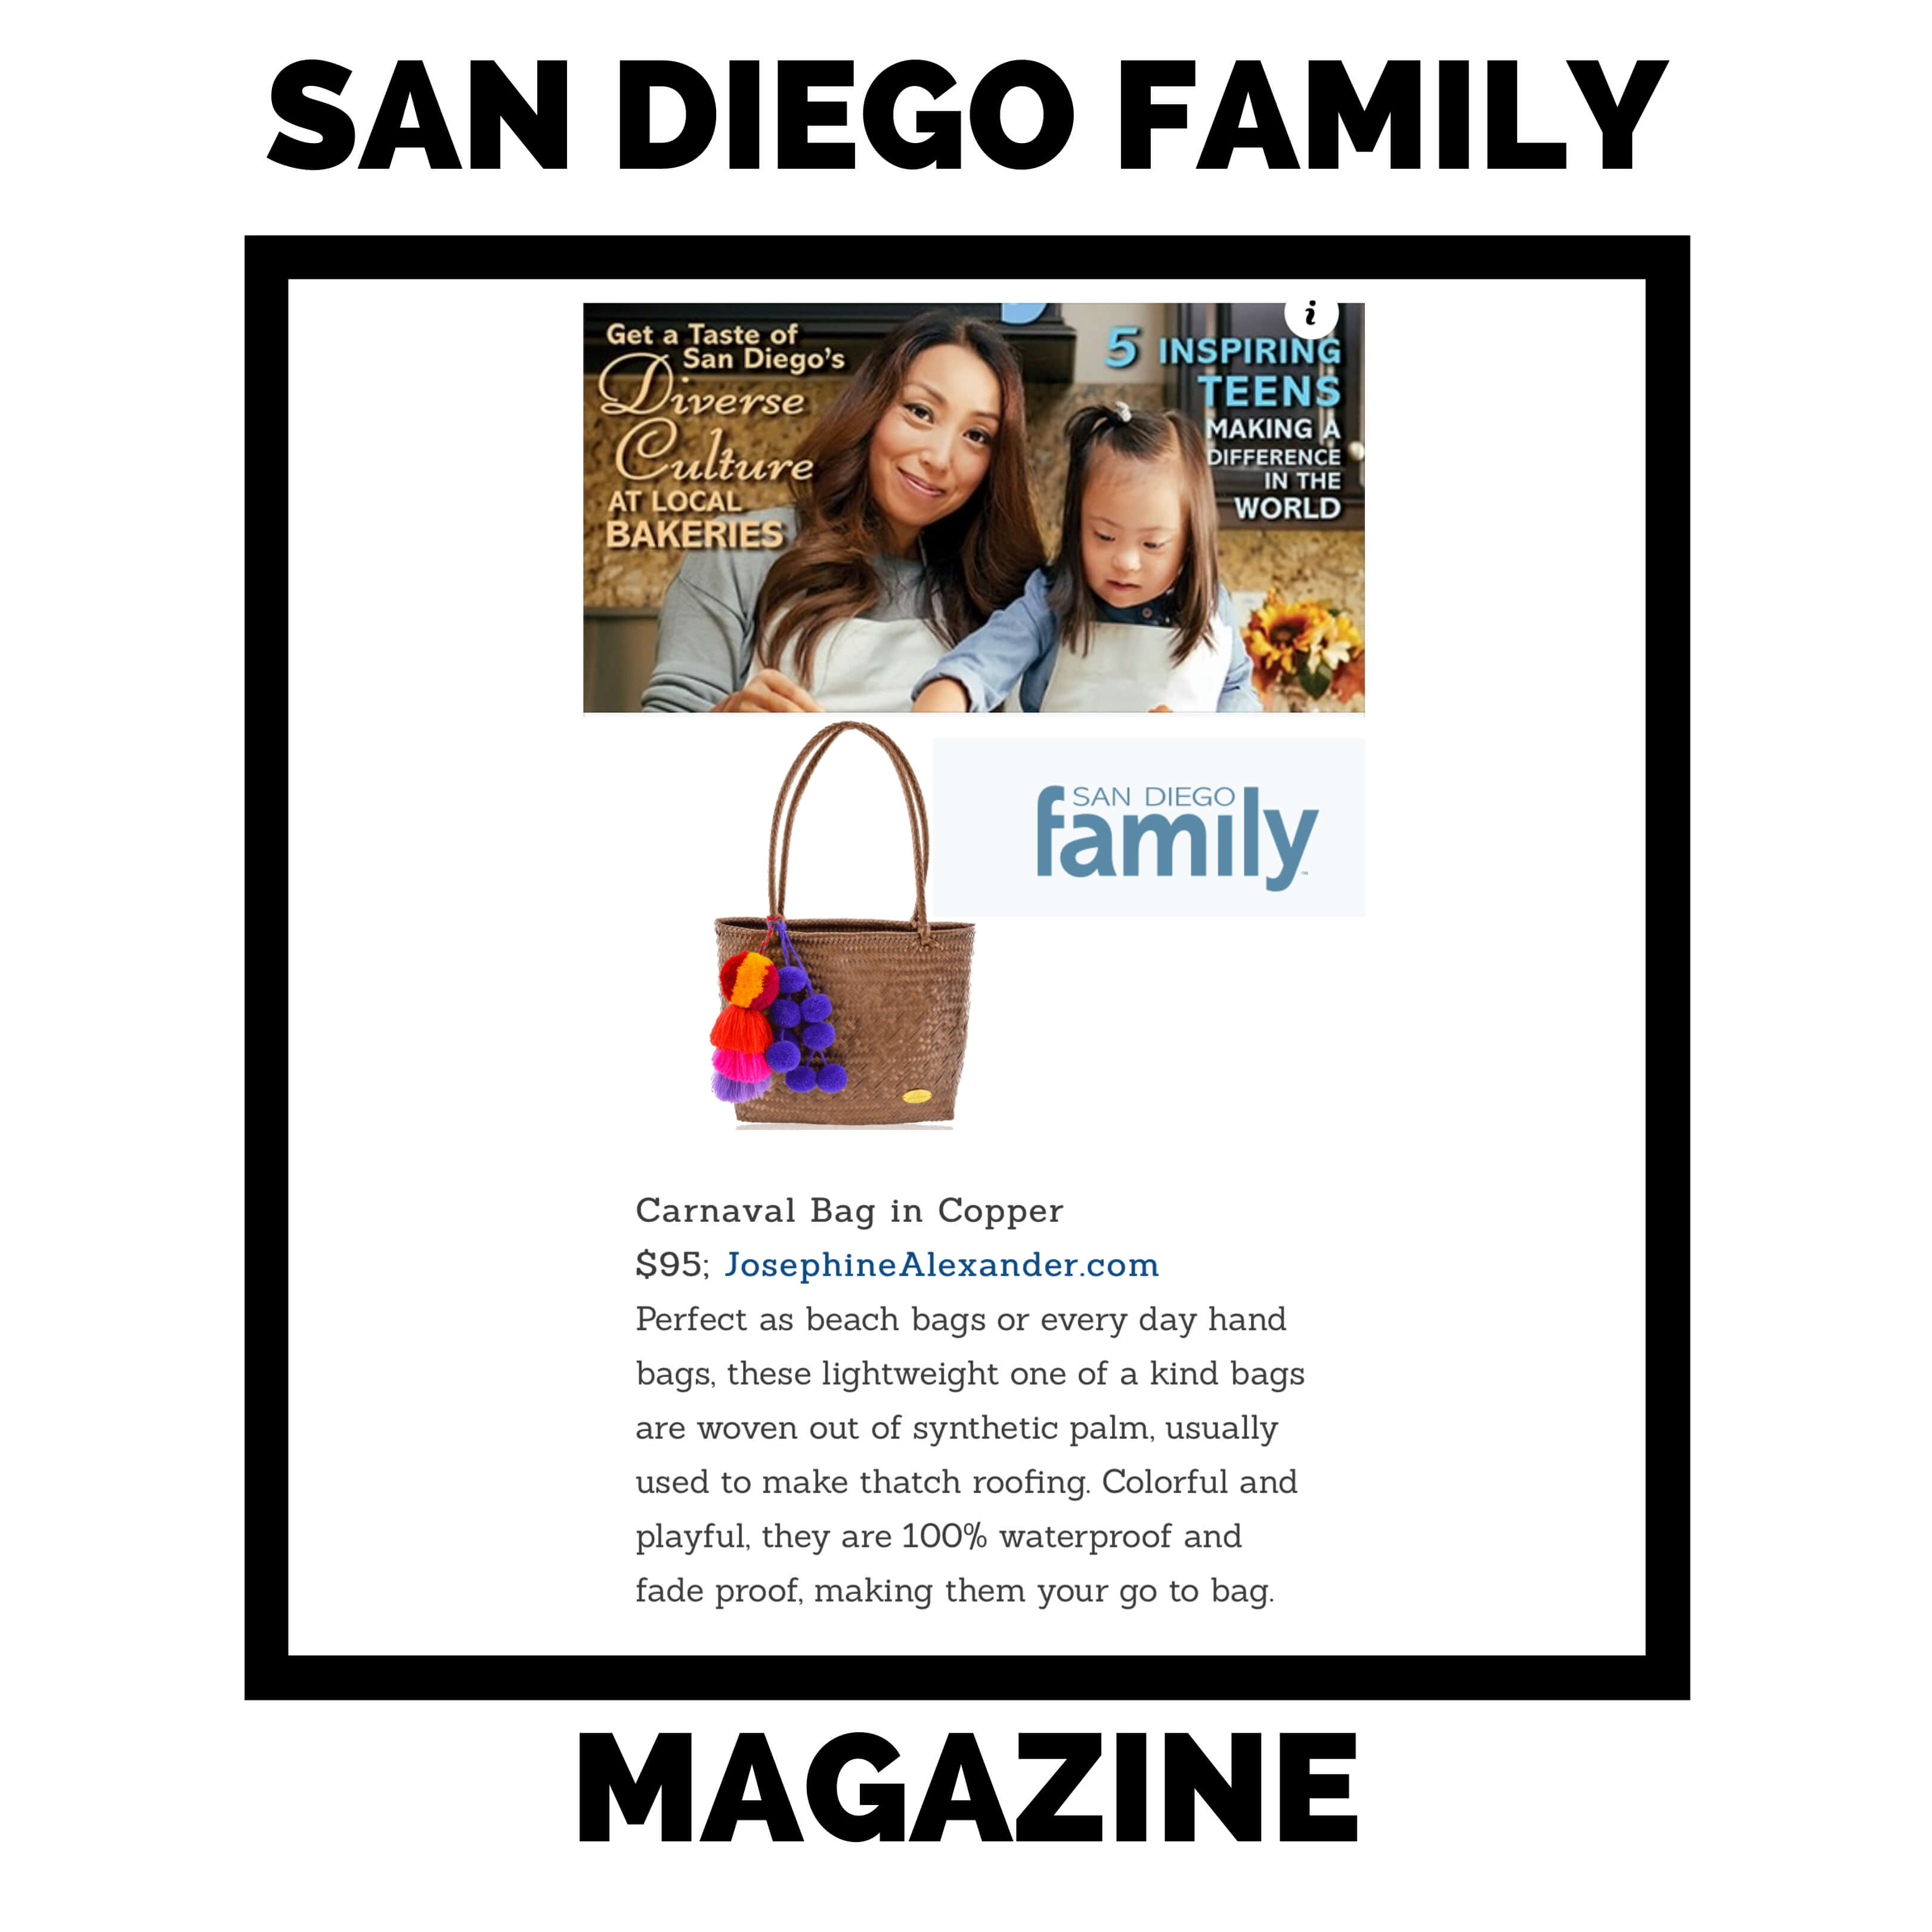 JAC featured in San Diego Family.